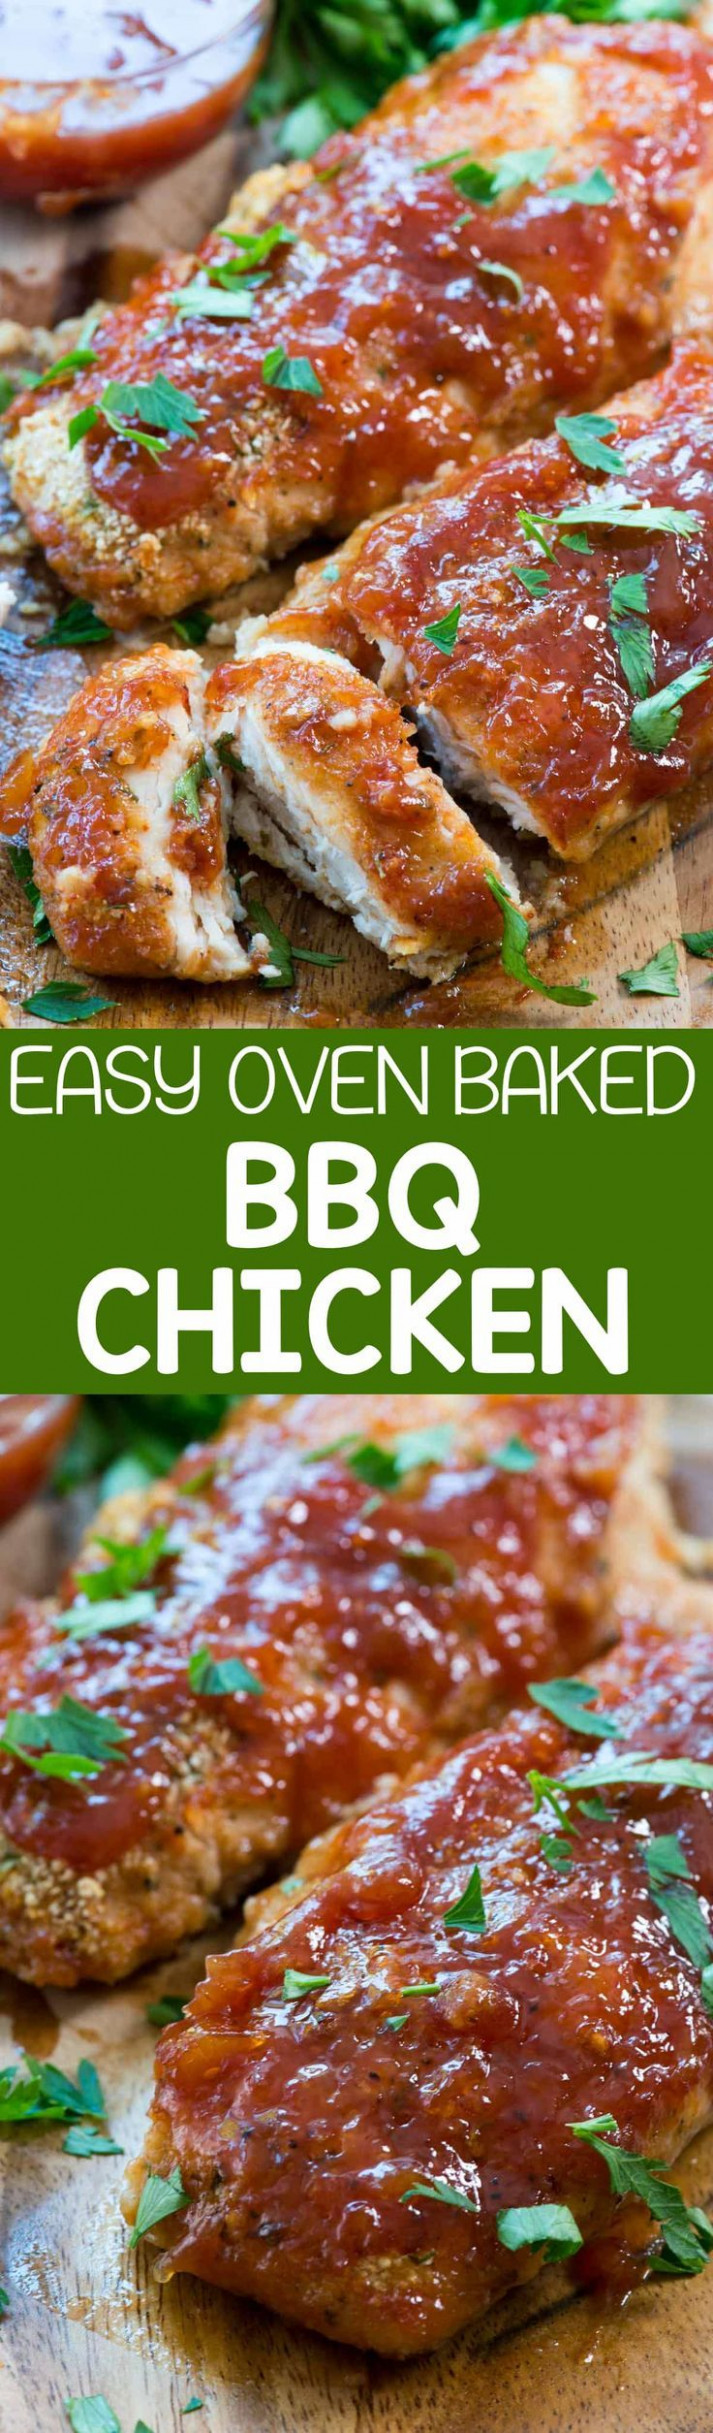 Easy Oven Baked BBQ Chicken - this easy chicken recipe ..